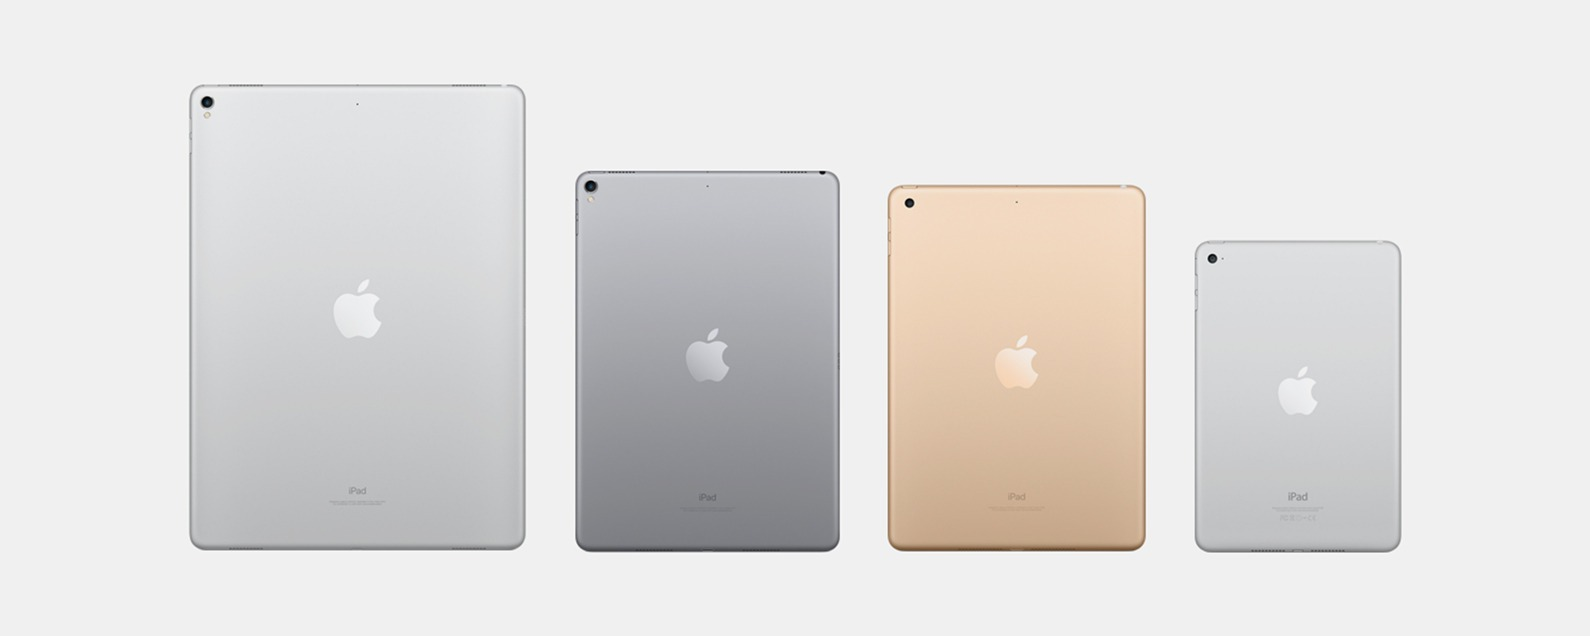 can i find my stolen ipad with serial number